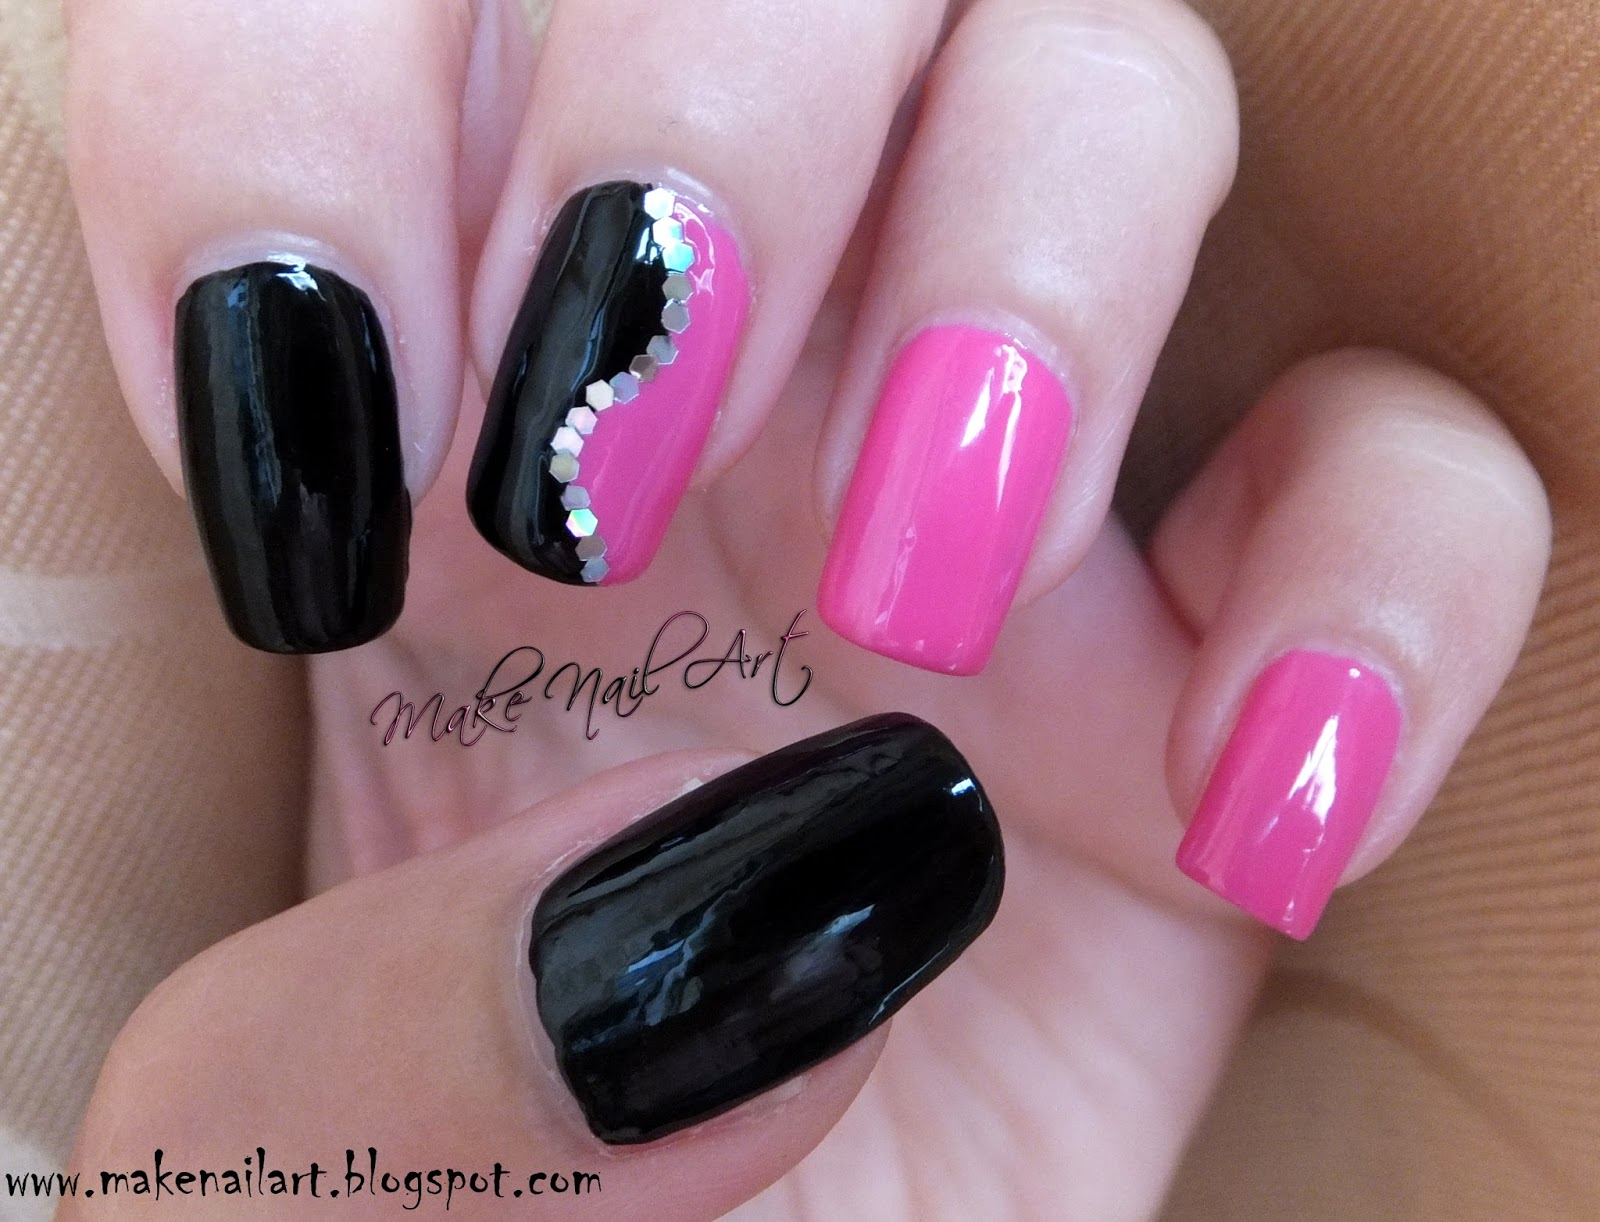 Make Nail Art: Easy Black And Pink Nail Design Nail Art ...